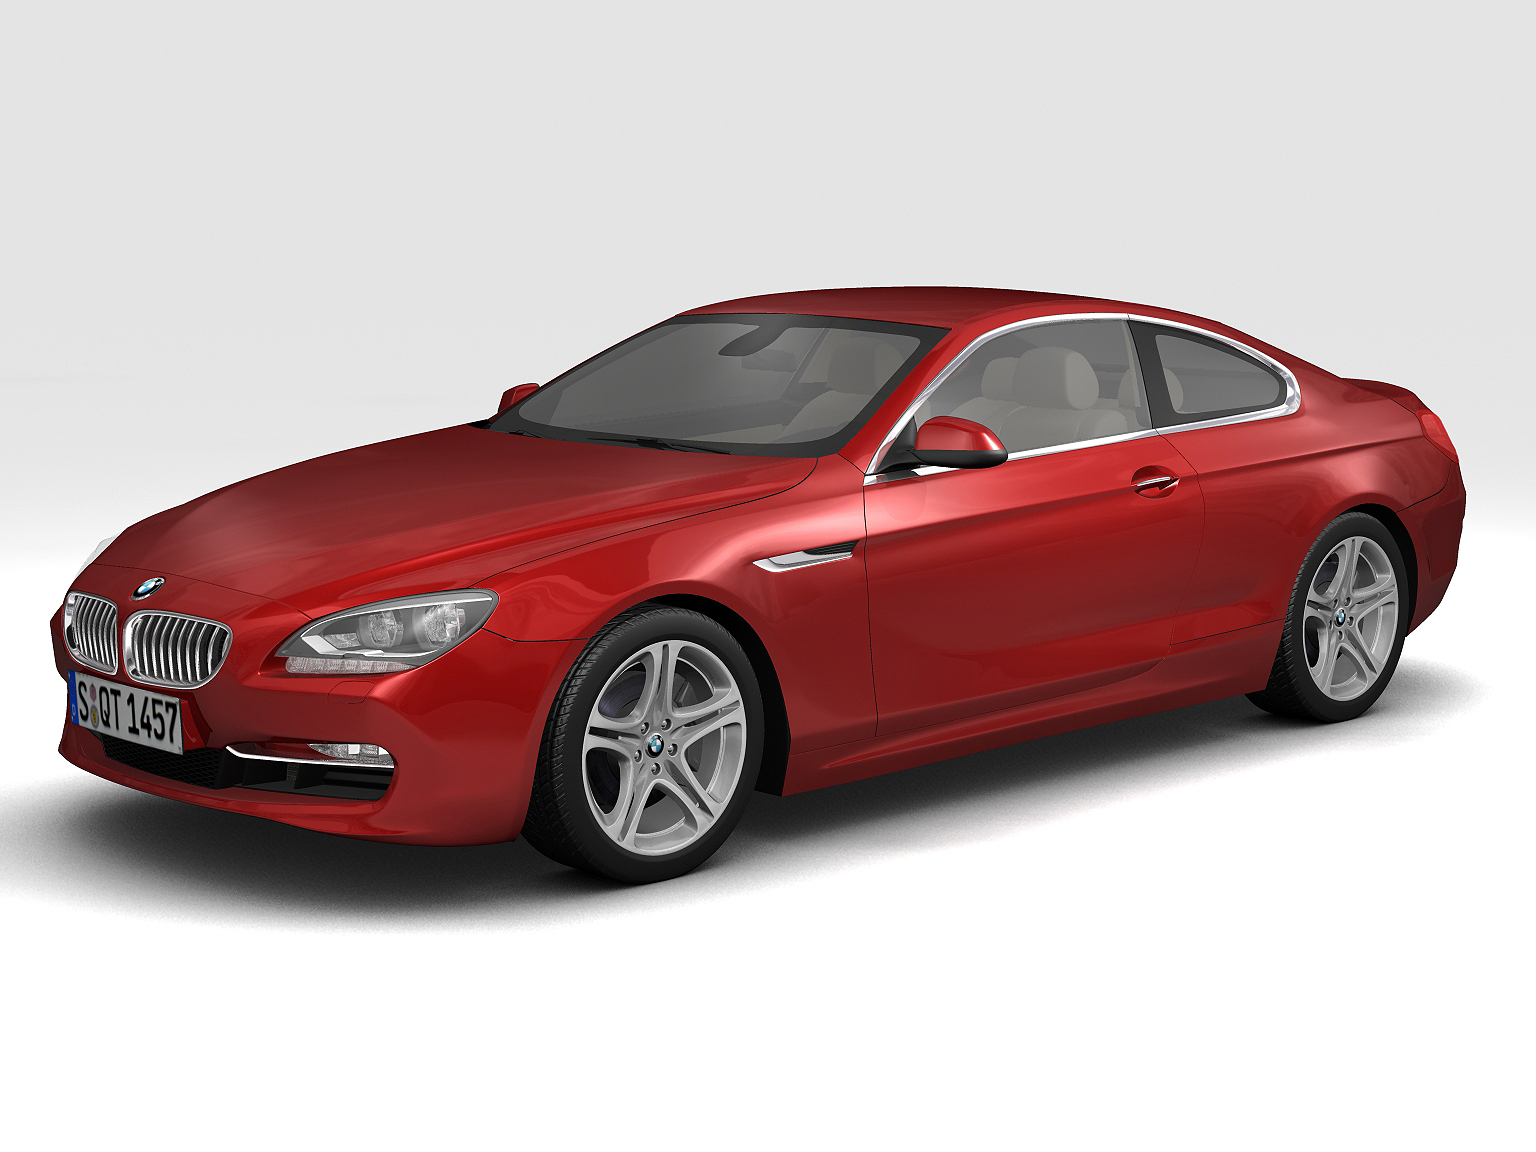 2011 bmw 6 series coupe 3d model 3ds max fbx c4d lwo hrc xsi obj 161697